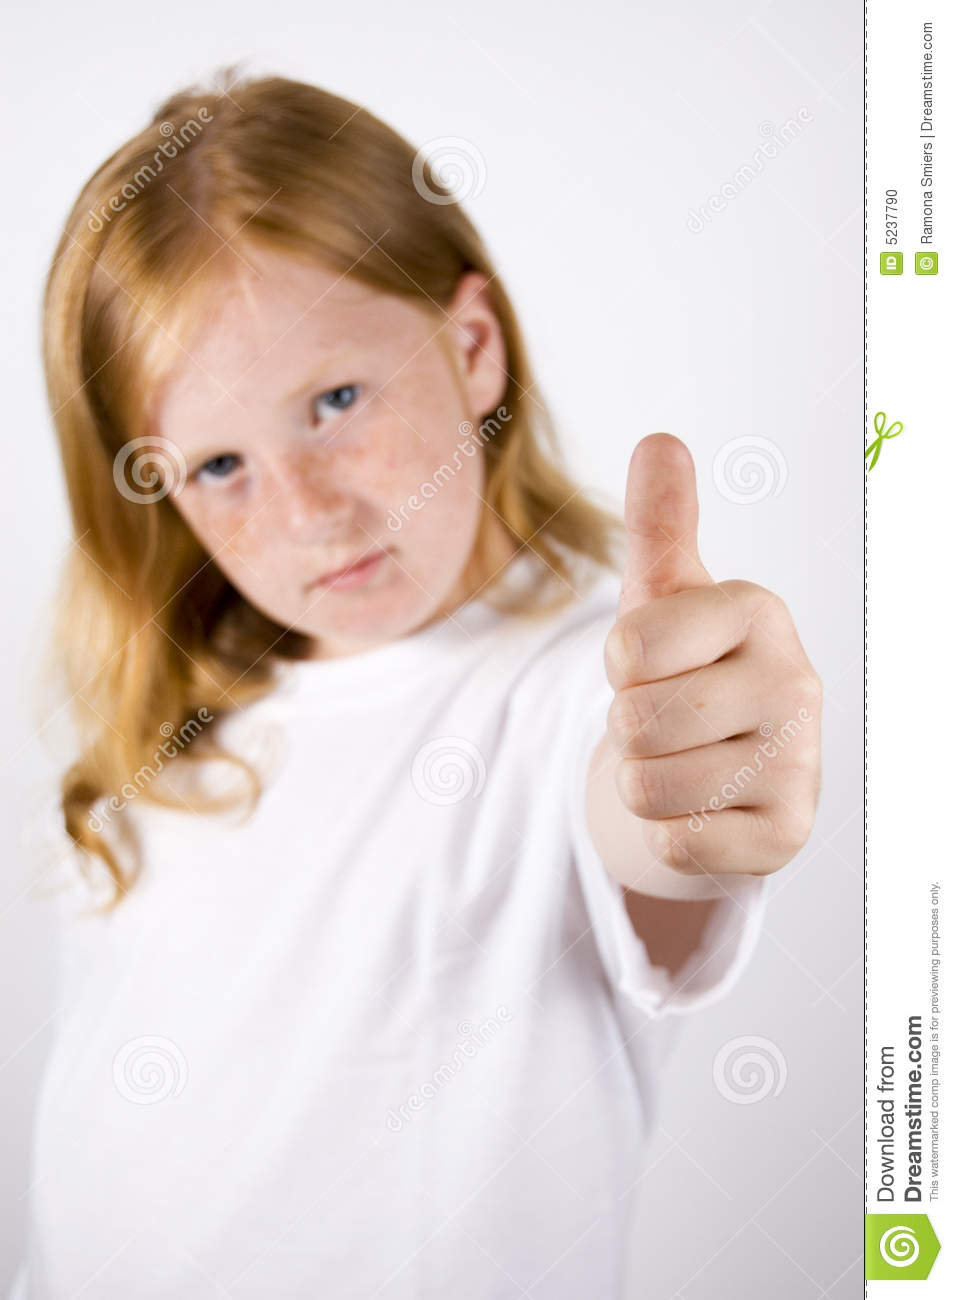 Cute Little Girl With Thumb Up Stock Photo Image 5237790